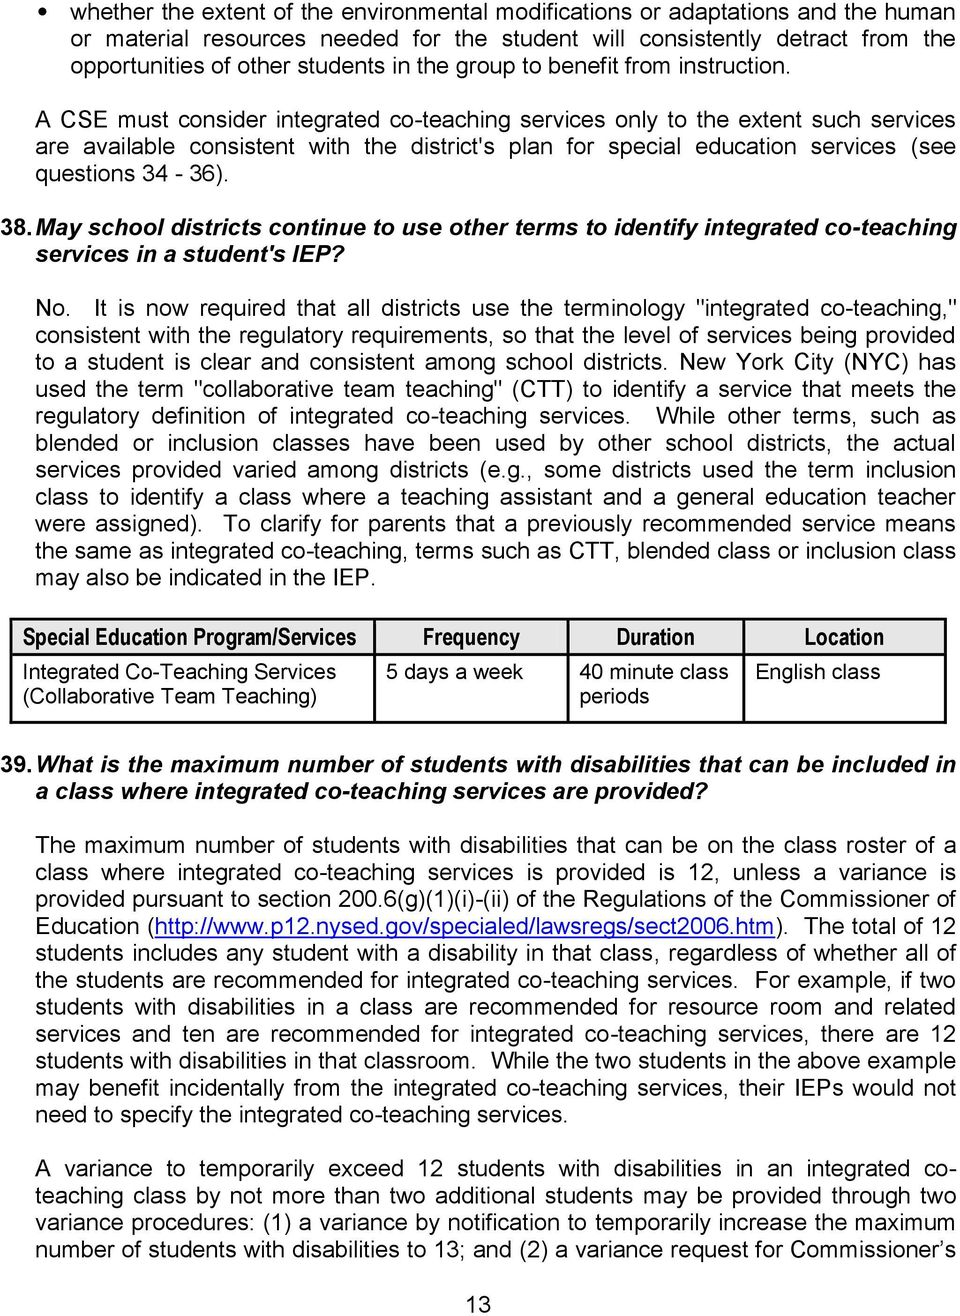 A CSE must consider integrated co-teaching services only to the extent such services are available consistent with the district's plan for special education services (see questions 34-36). 38.